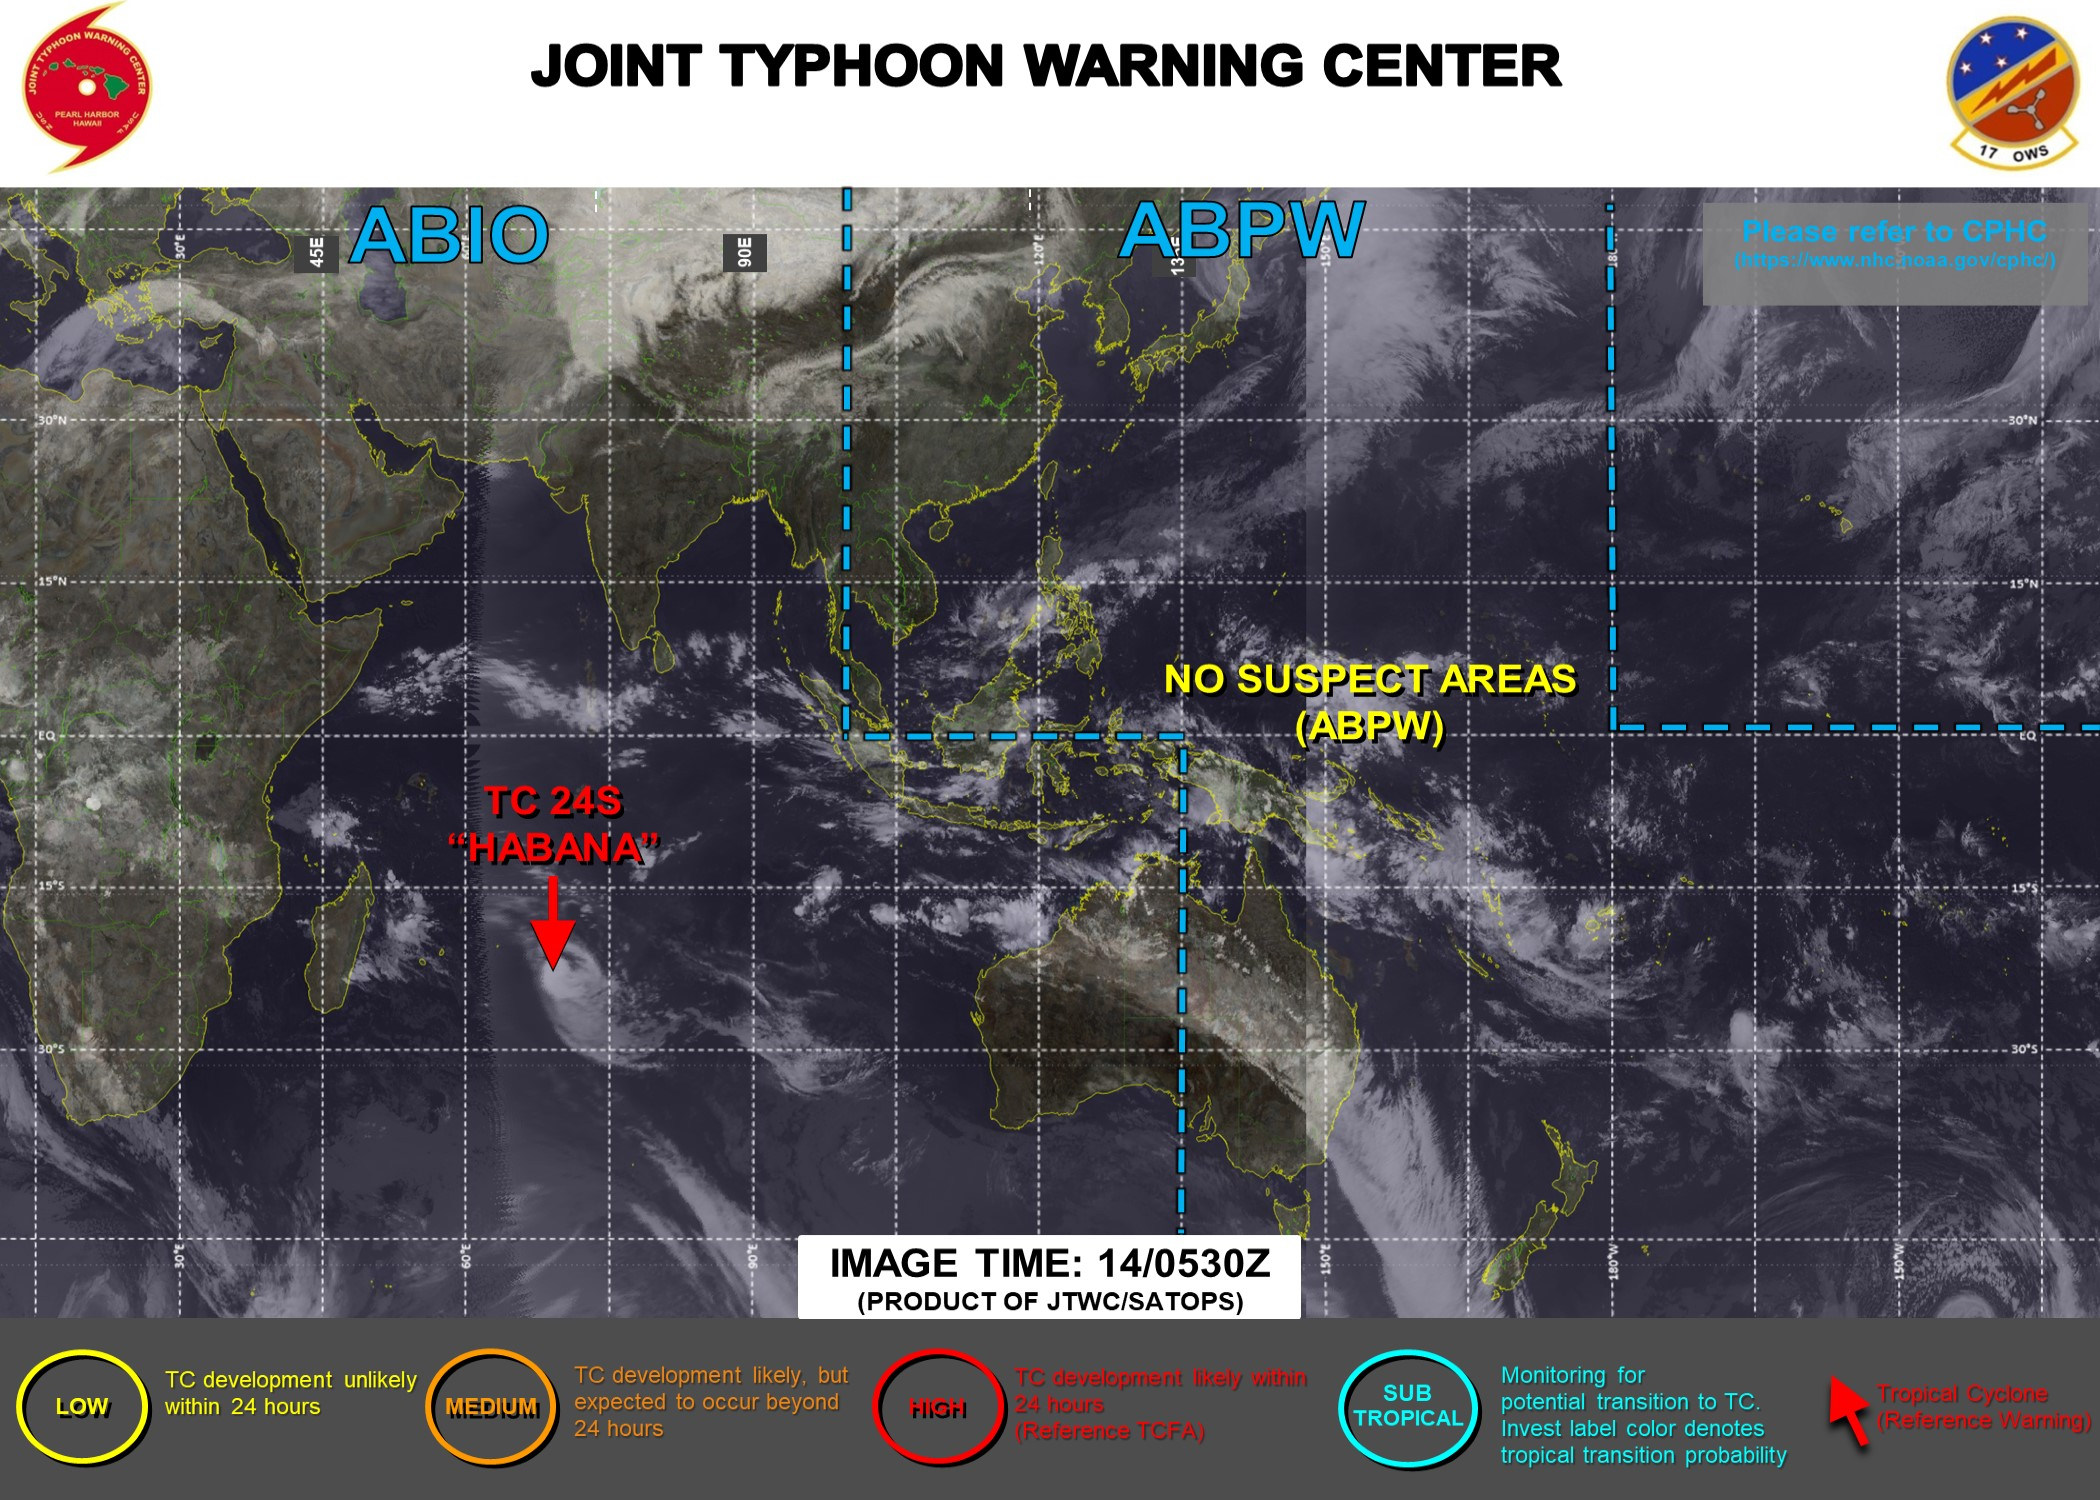 14/09UTC. JTWC HAS BEEN ISSUING 12HOURLY WARNINGS ON TC 24S(HABANA) ALONG WITH 3 HOURLY SATELLITE BULLETINS.